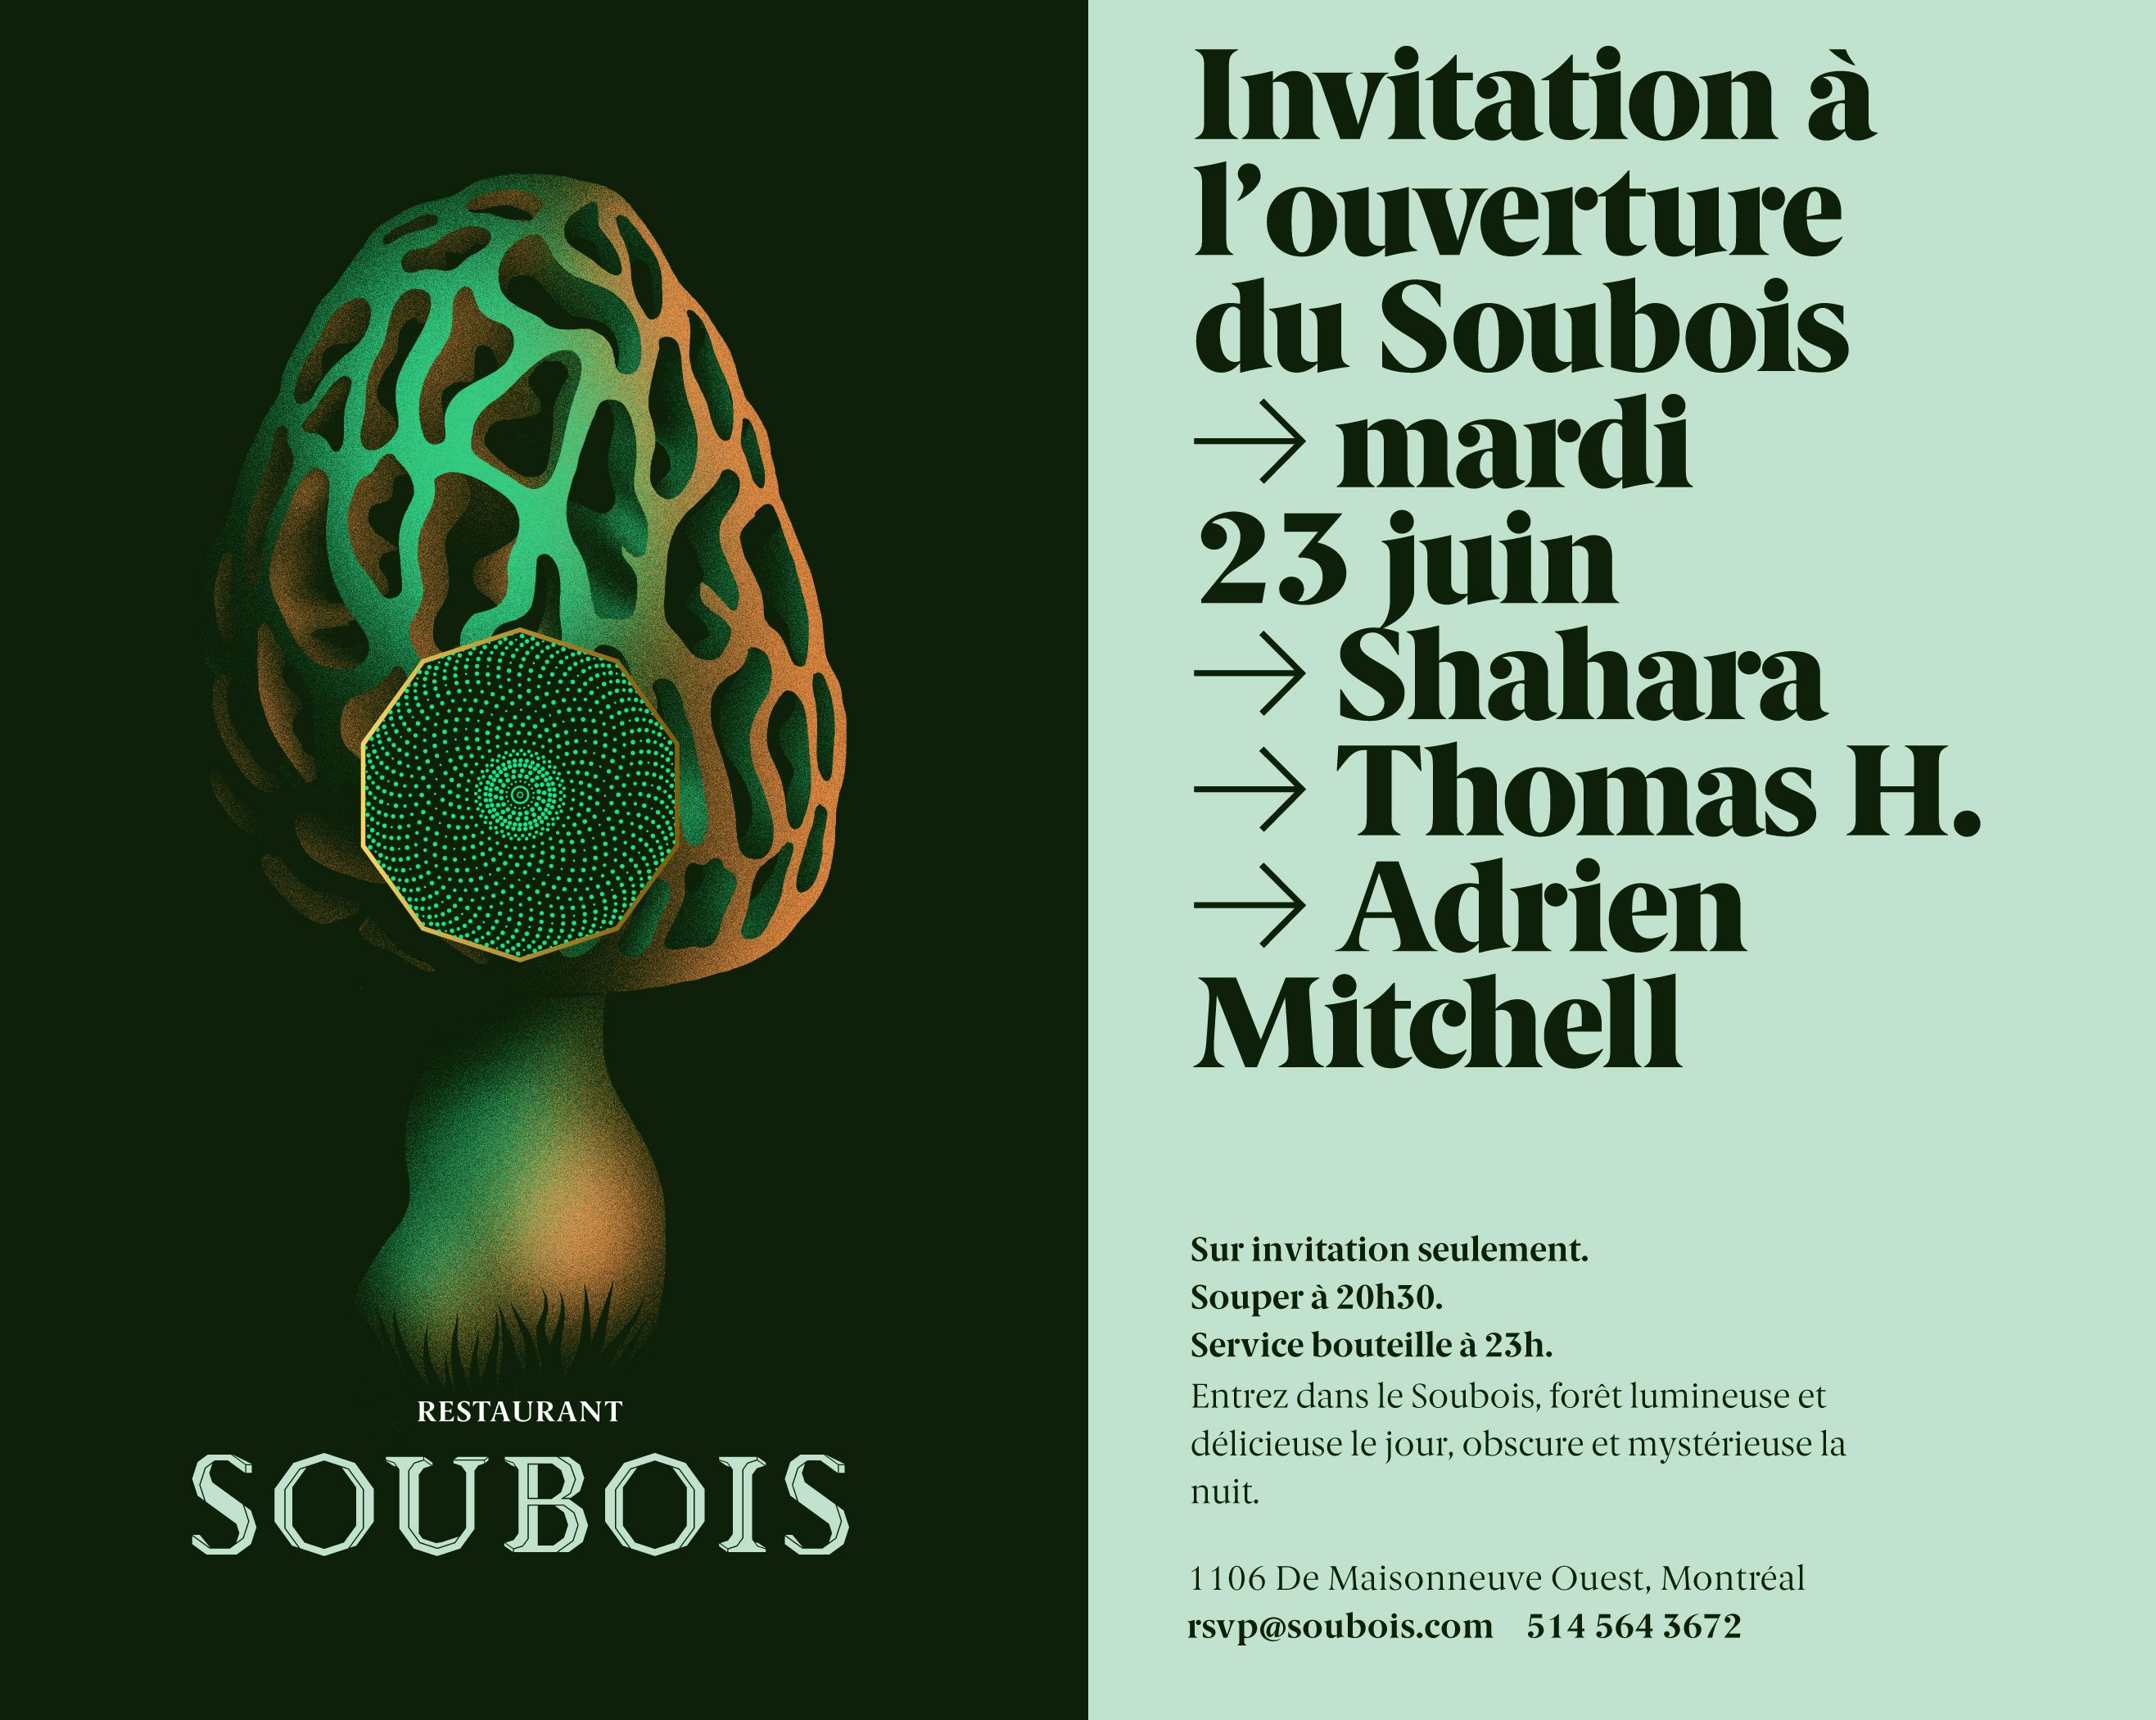 Soubois Is A Bistro Du Terroir Bar And Nightclub Located In An